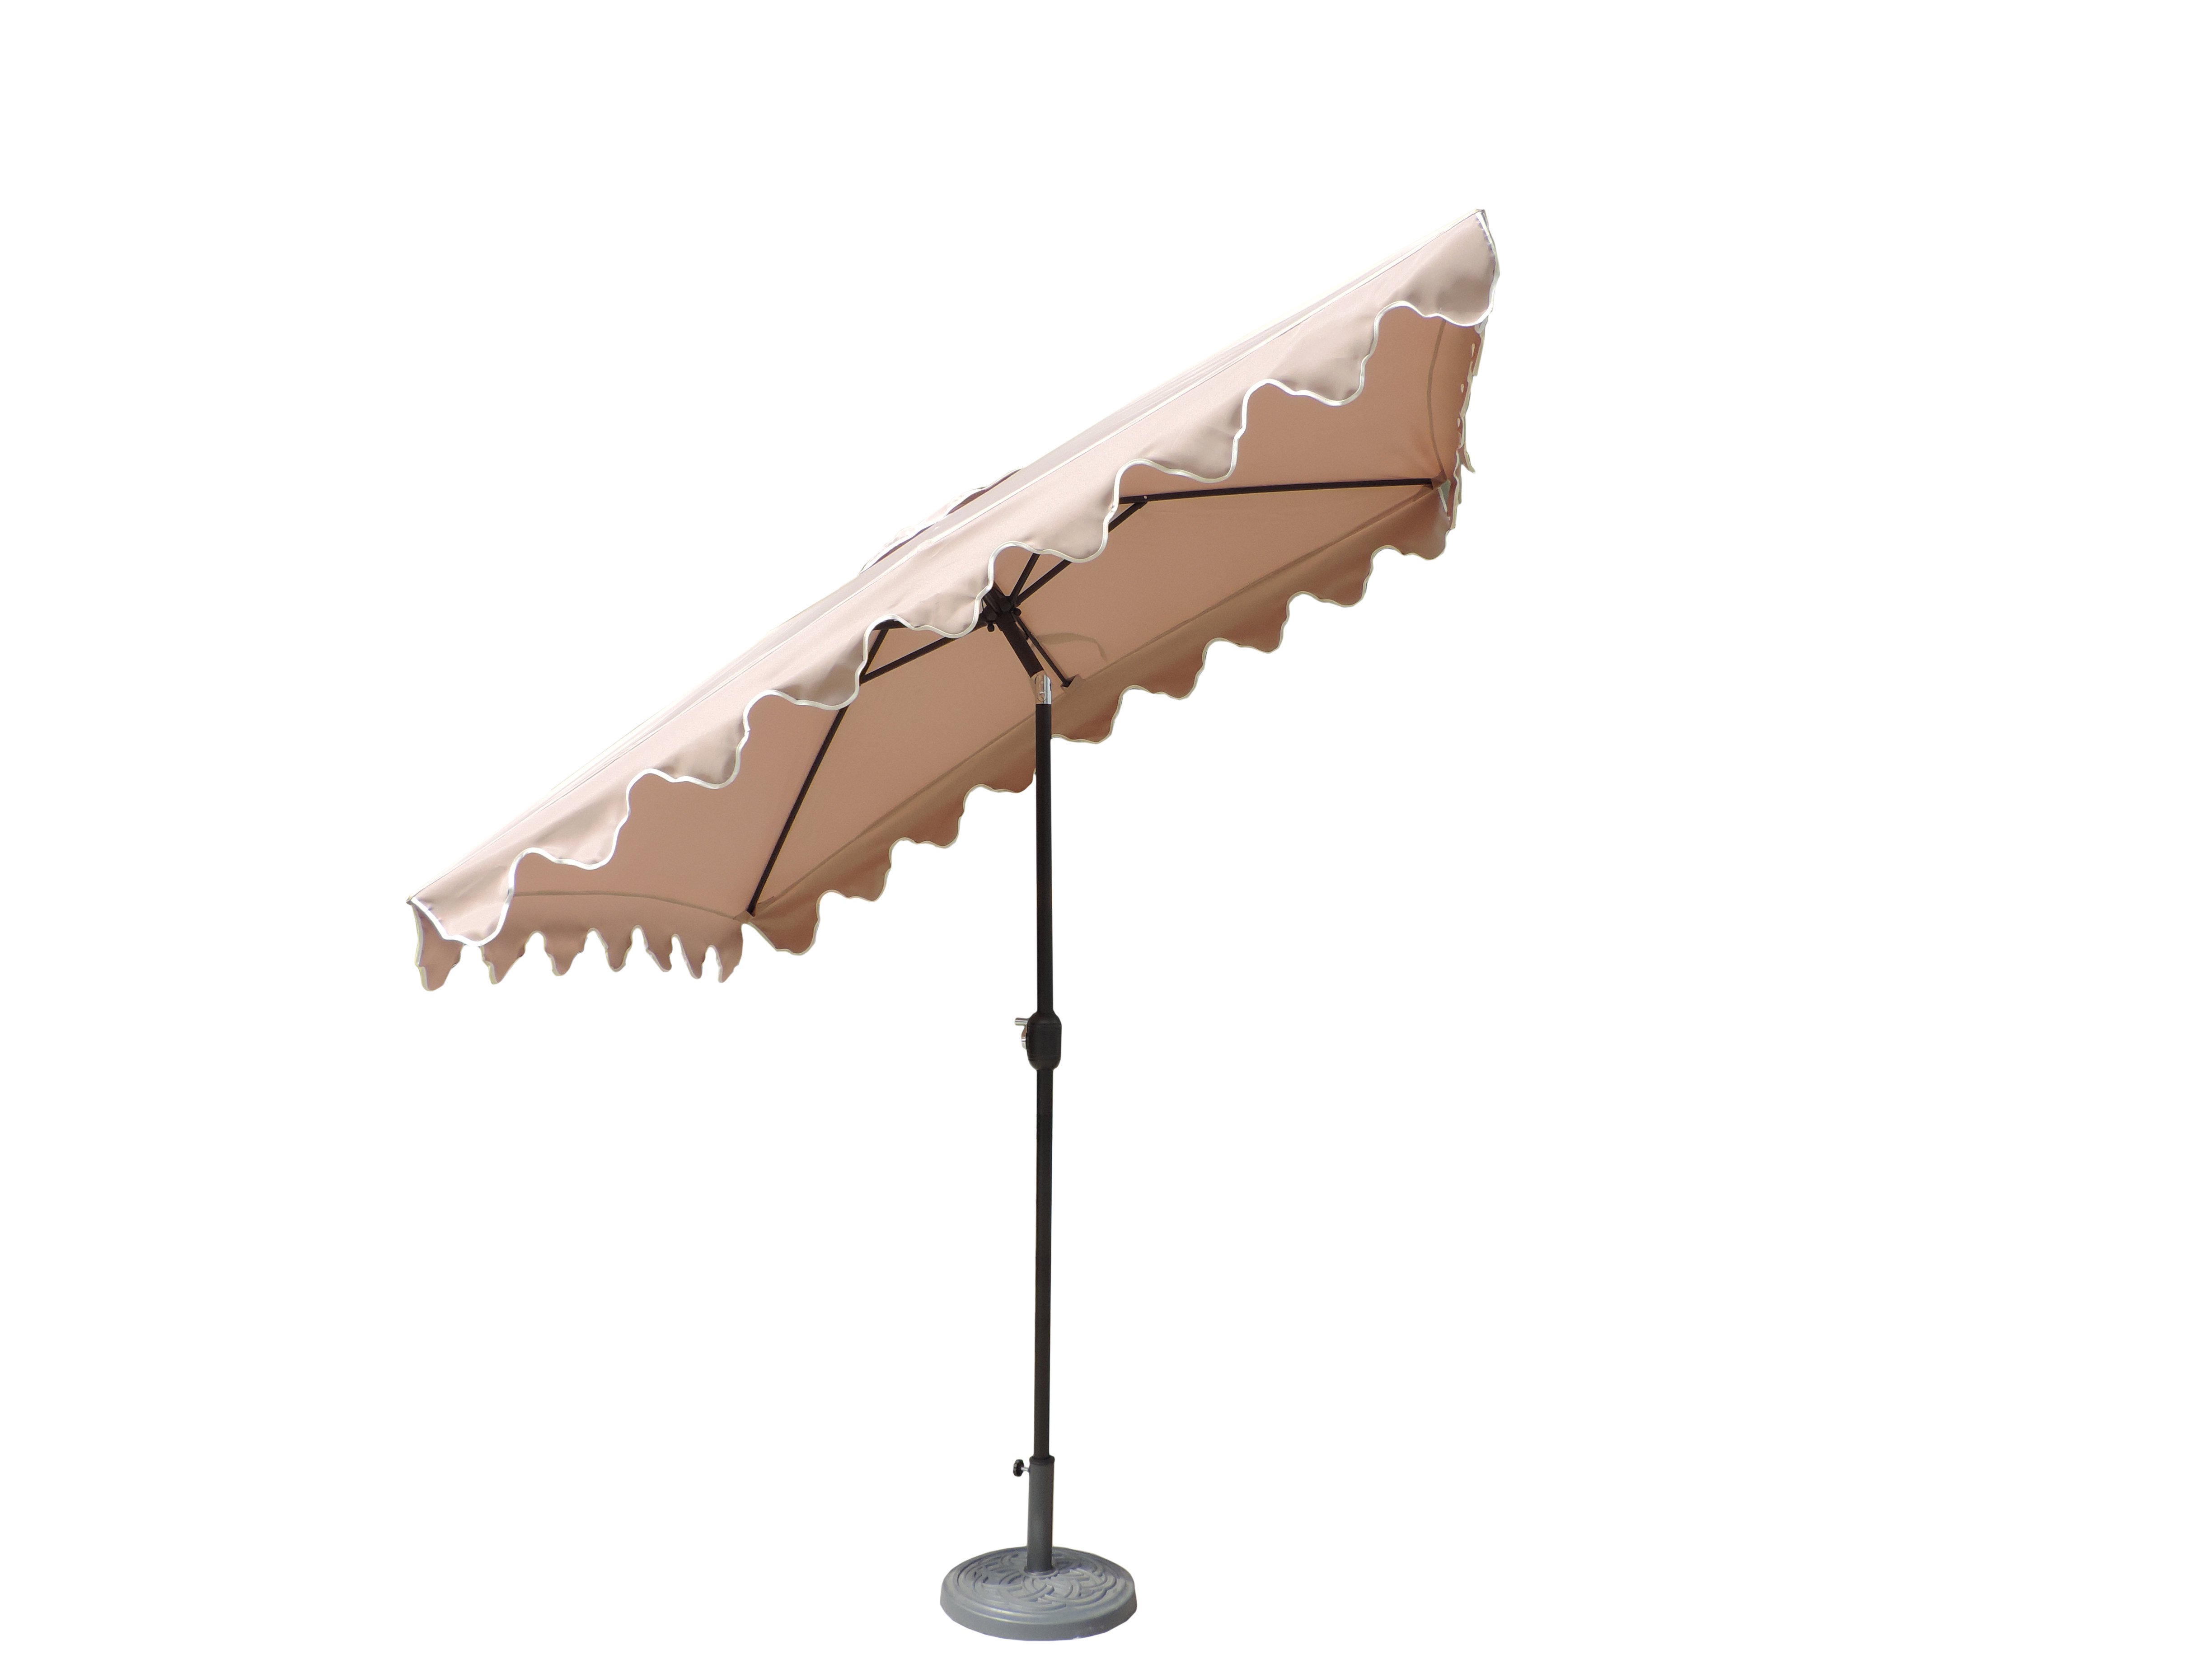 Lonoke Patio 8' X 6' Rectangular Market Umbrella Throughout Widely Used Pedrick Drape Market Umbrellas (View 12 of 20)